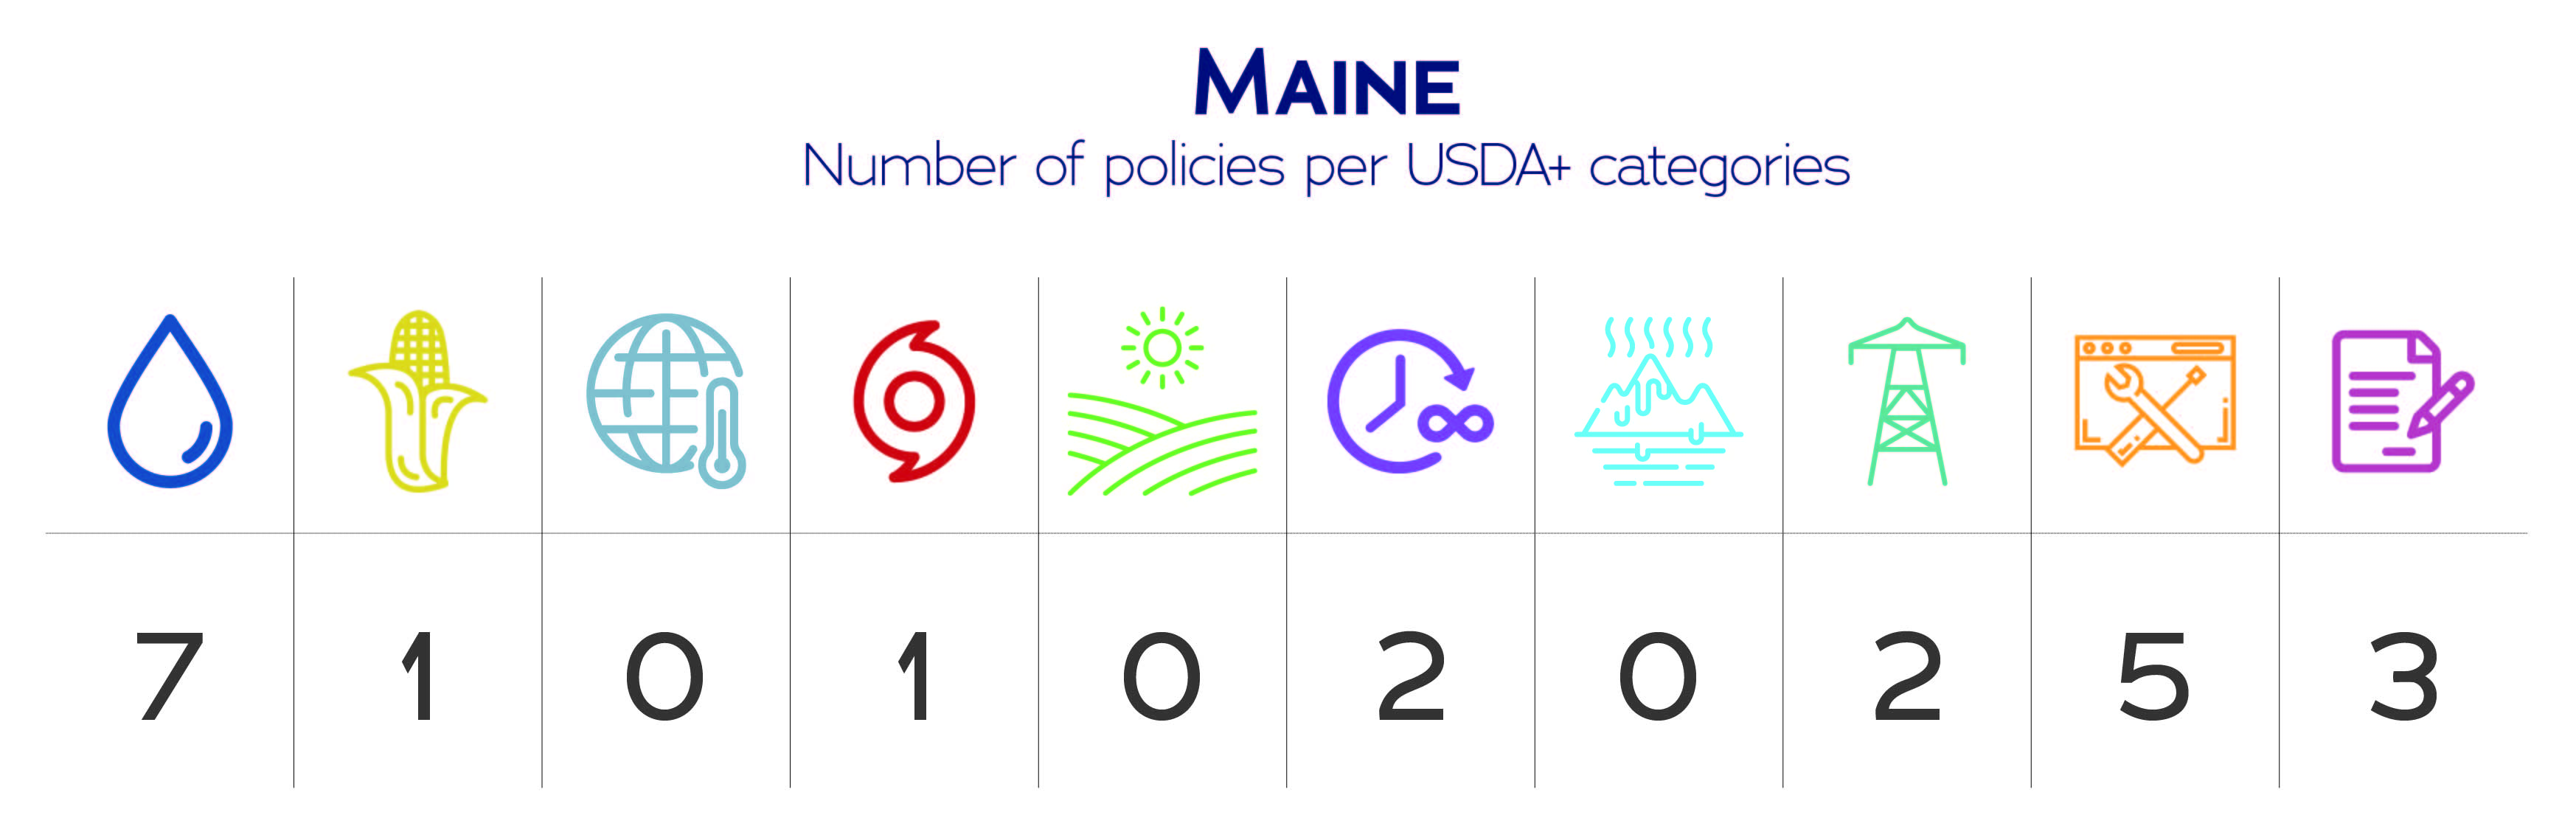 Maine USDA+ category data